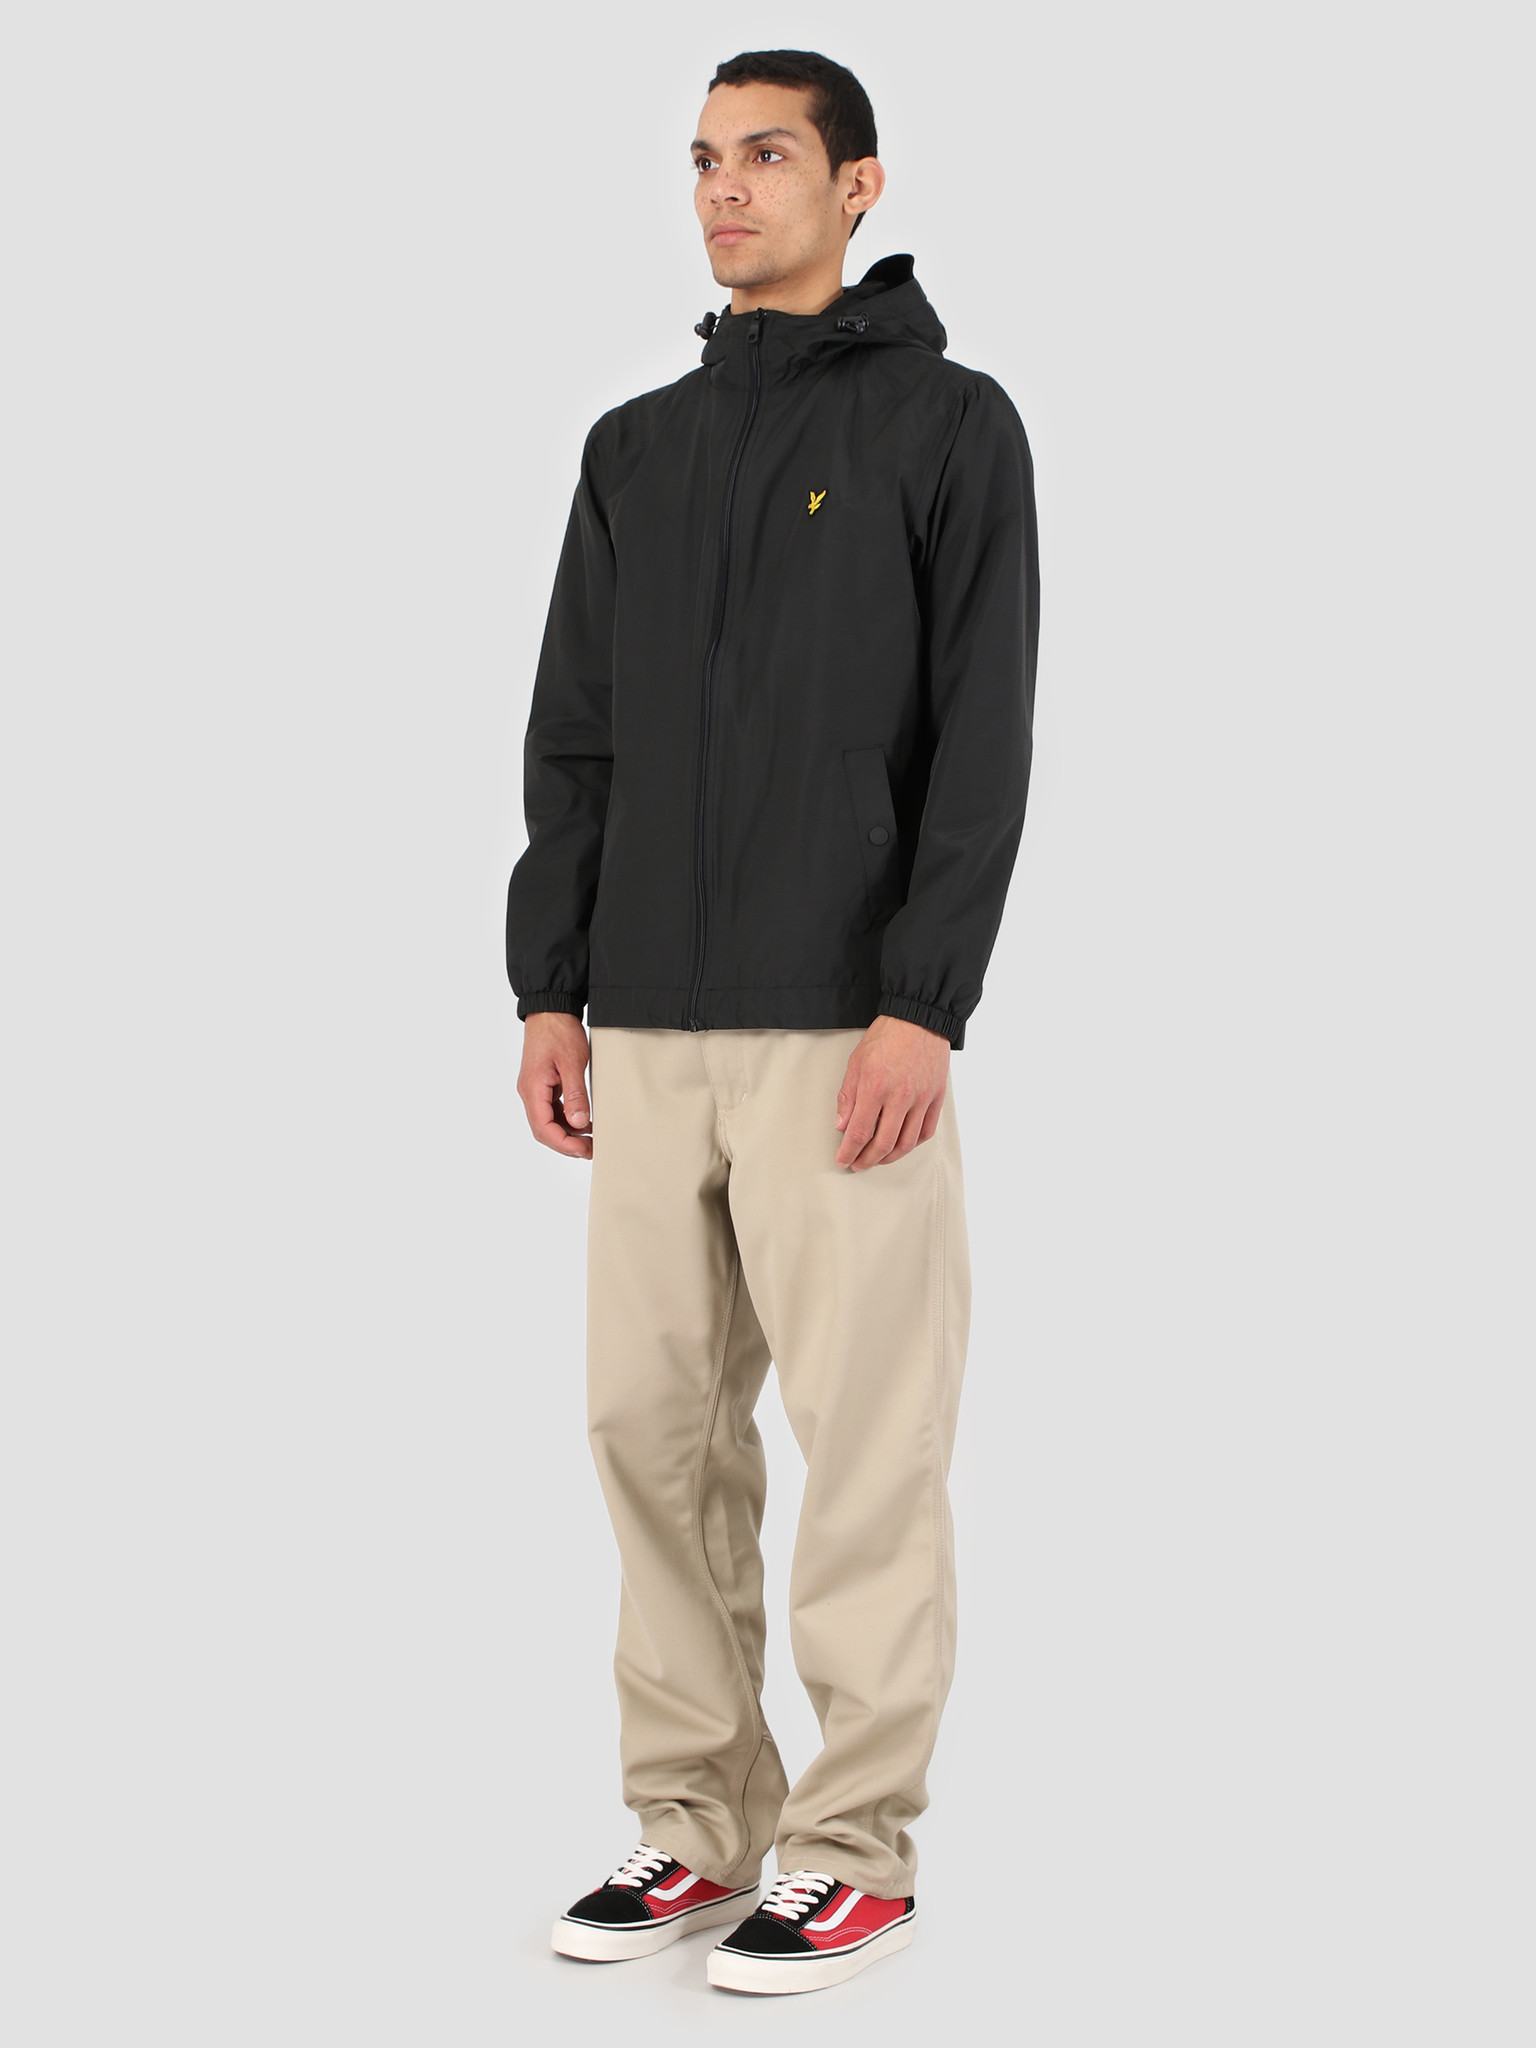 Lyle and Scott Lyle and Scott Zip Through Hooded Jacket 572 True Black JK464V